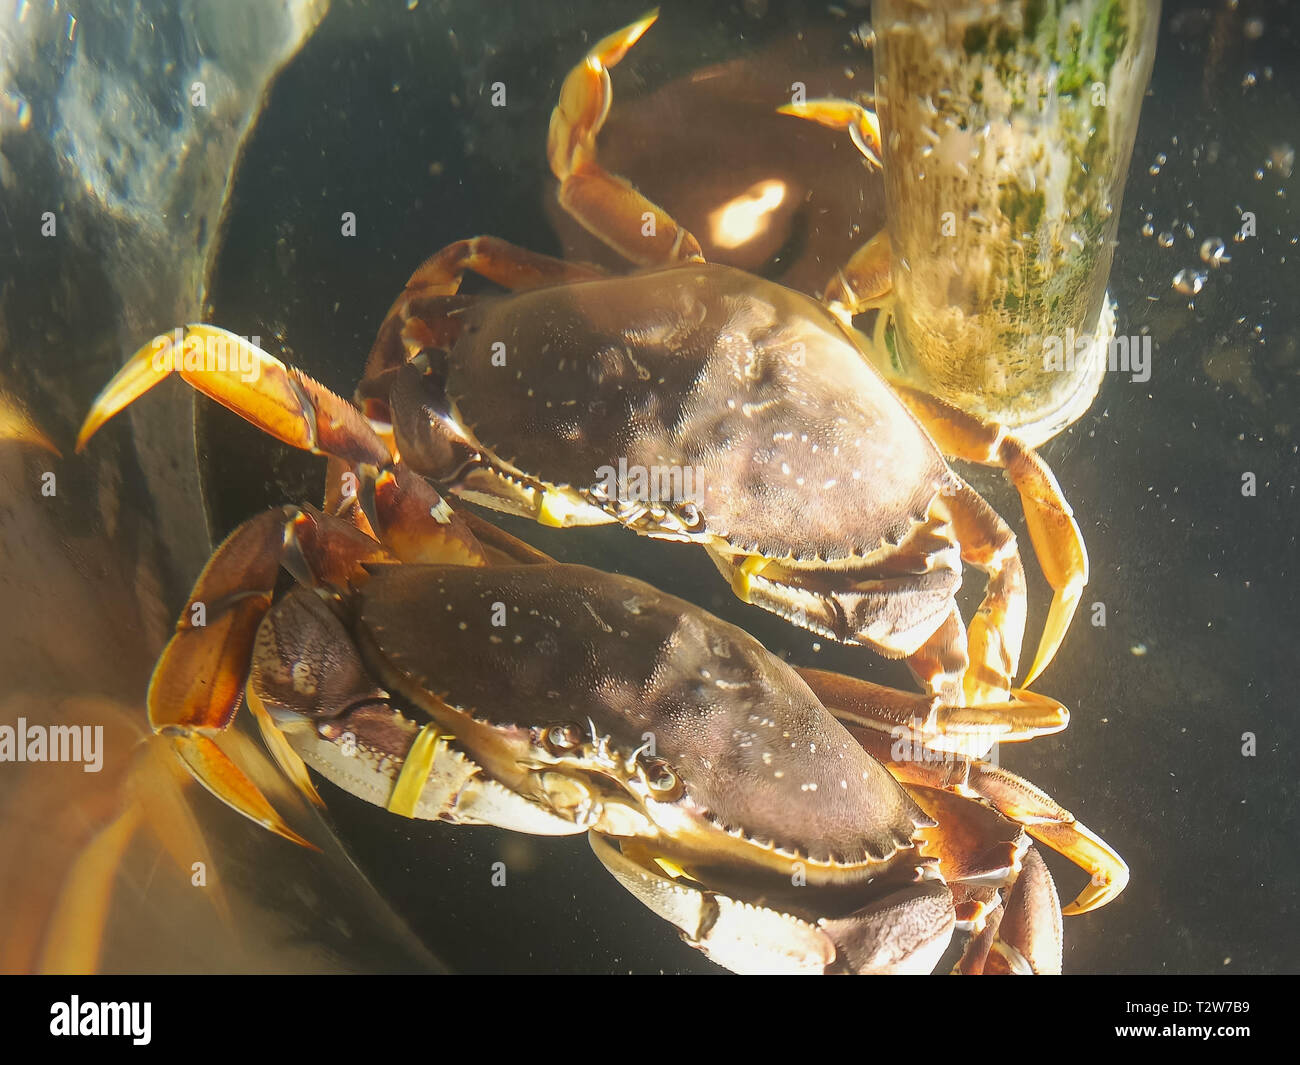 two live dungeness crabs at pike place market in seattle washington - Stock Image